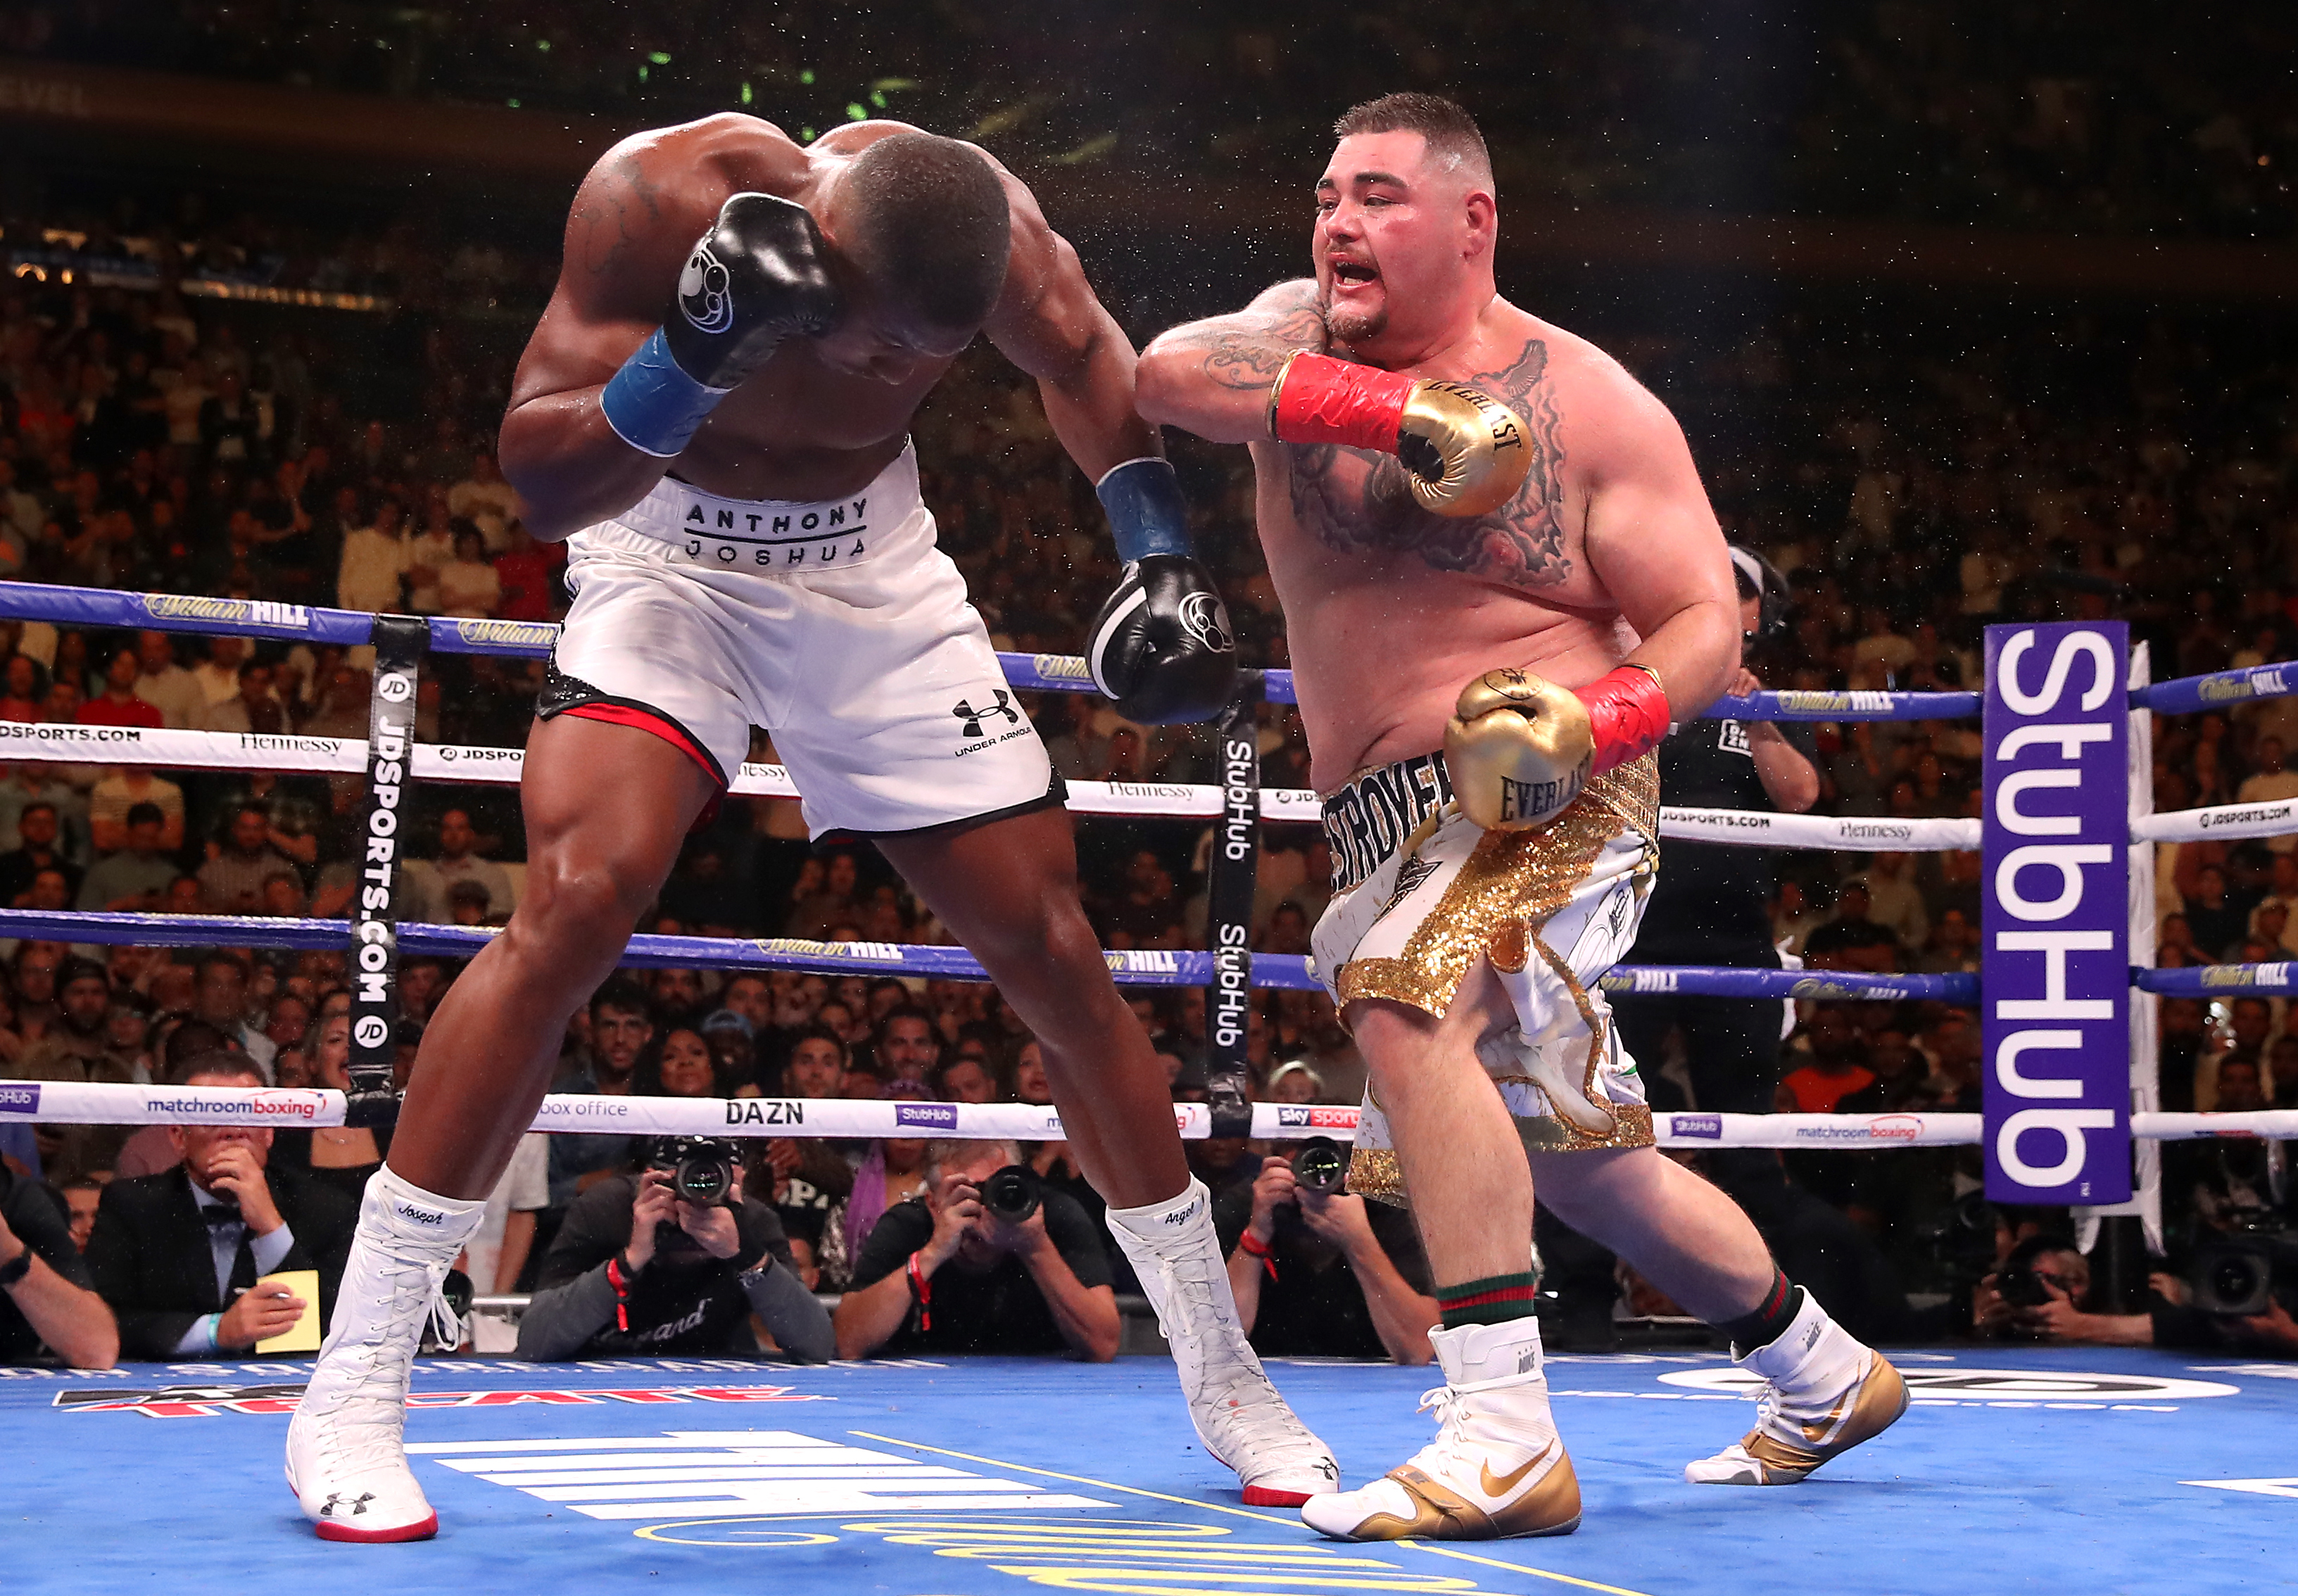 Anthony Joshua & Andy Ruiz Jr Rematch Set For Saudi Arabia